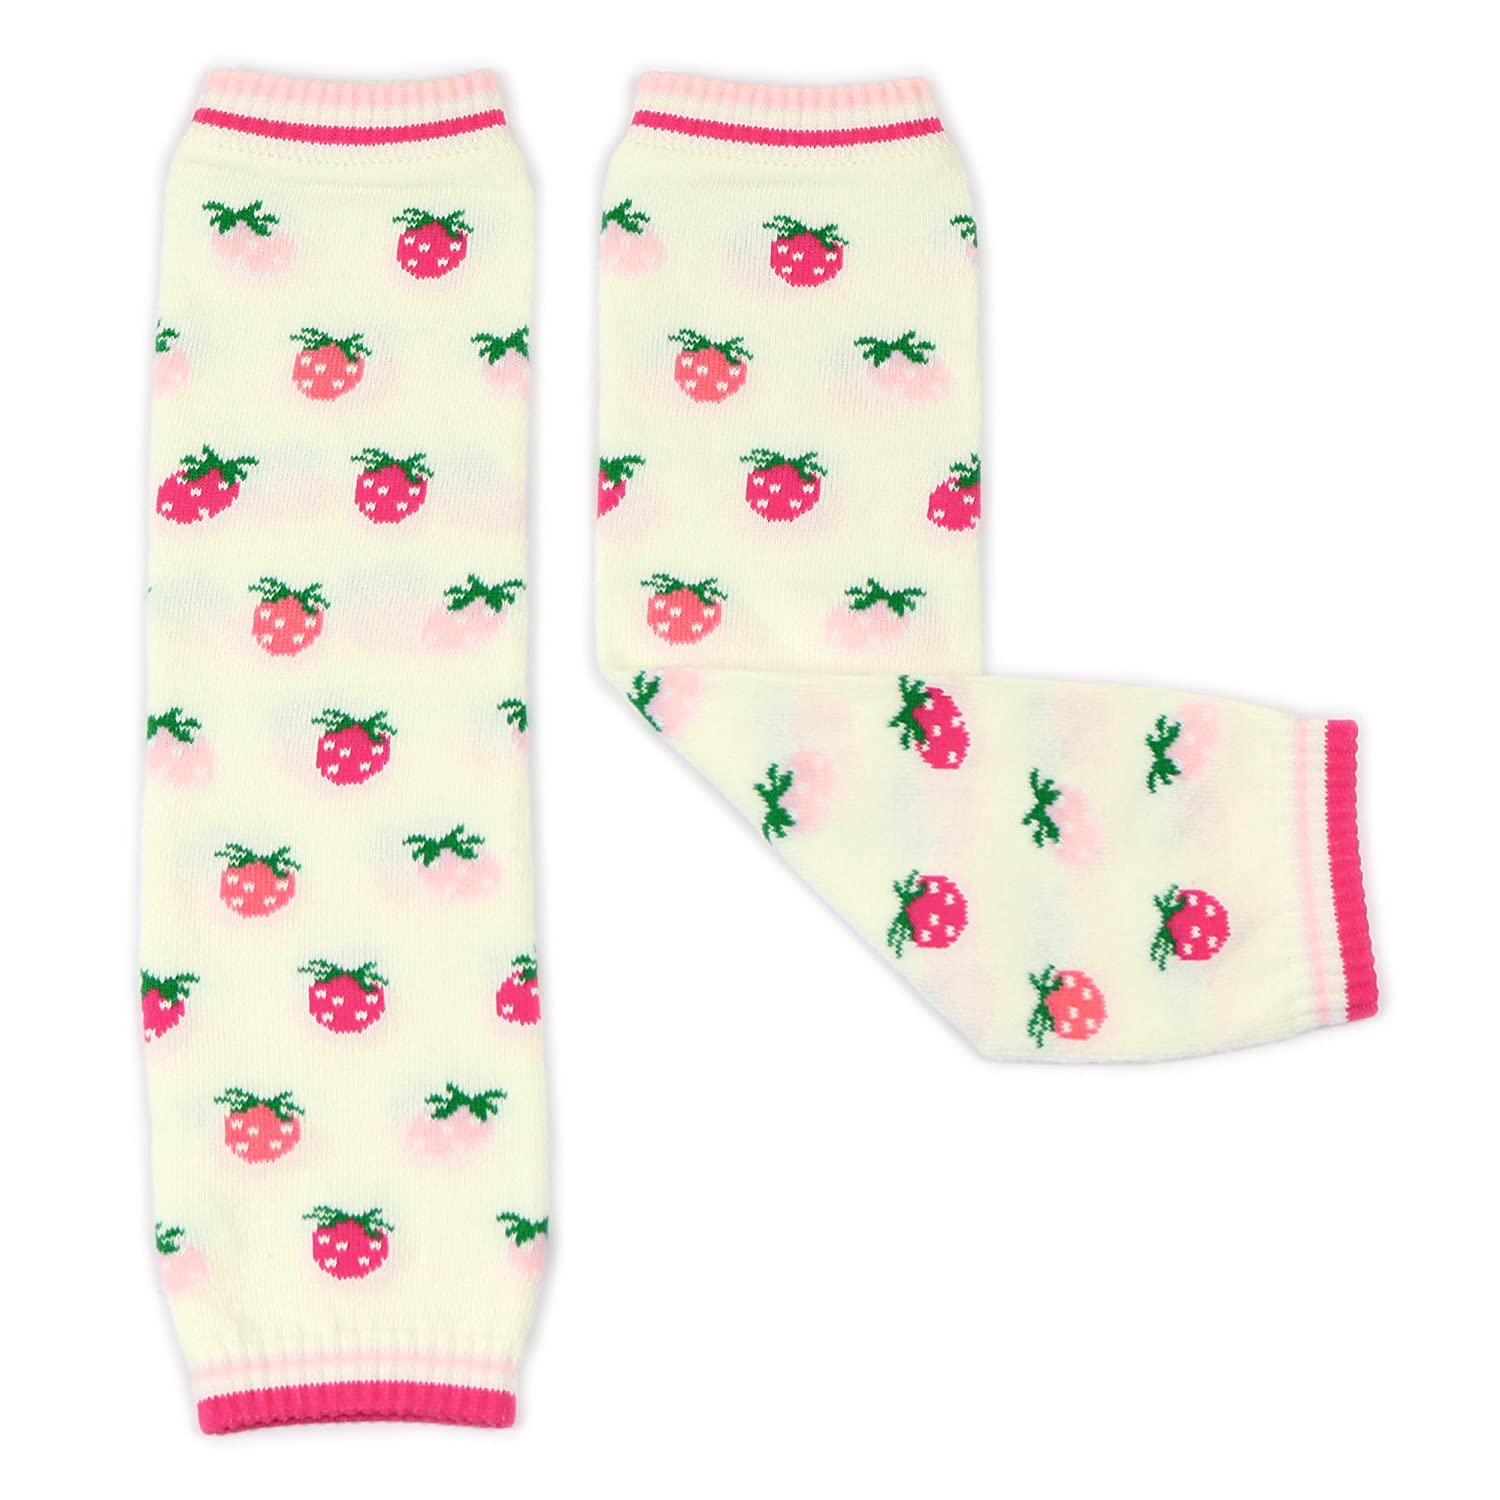 Girls Legwarmers by Dotty Fish - Baby and Toddler - Flowers, Cherries, Stripes, Stars and more - One Size ABL006